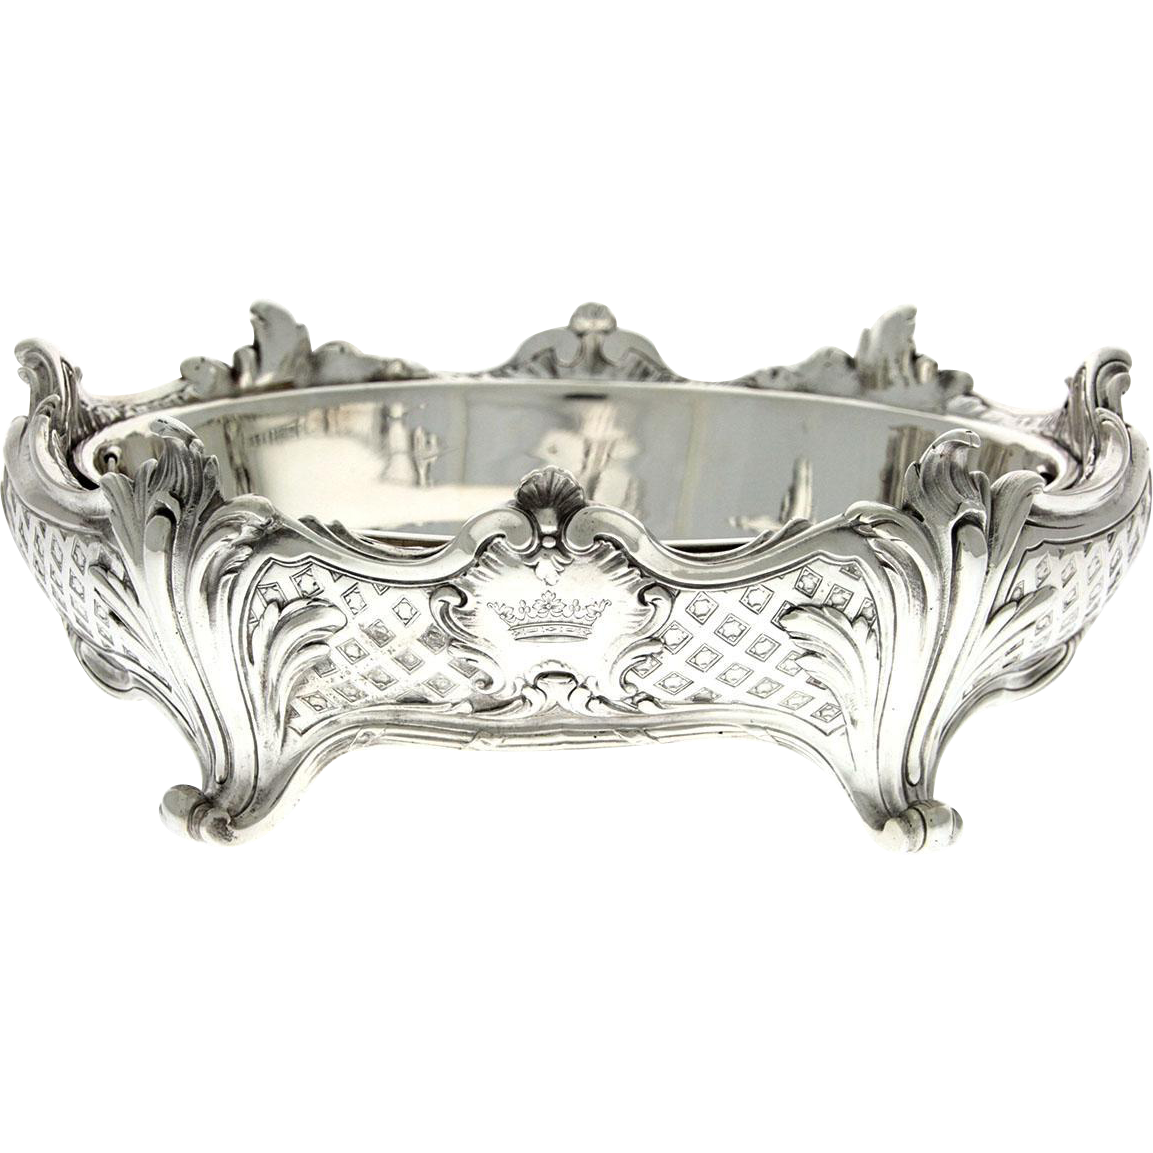 Christofle Silver Plated Centerpiece Jardinere, France, Circa 1900.